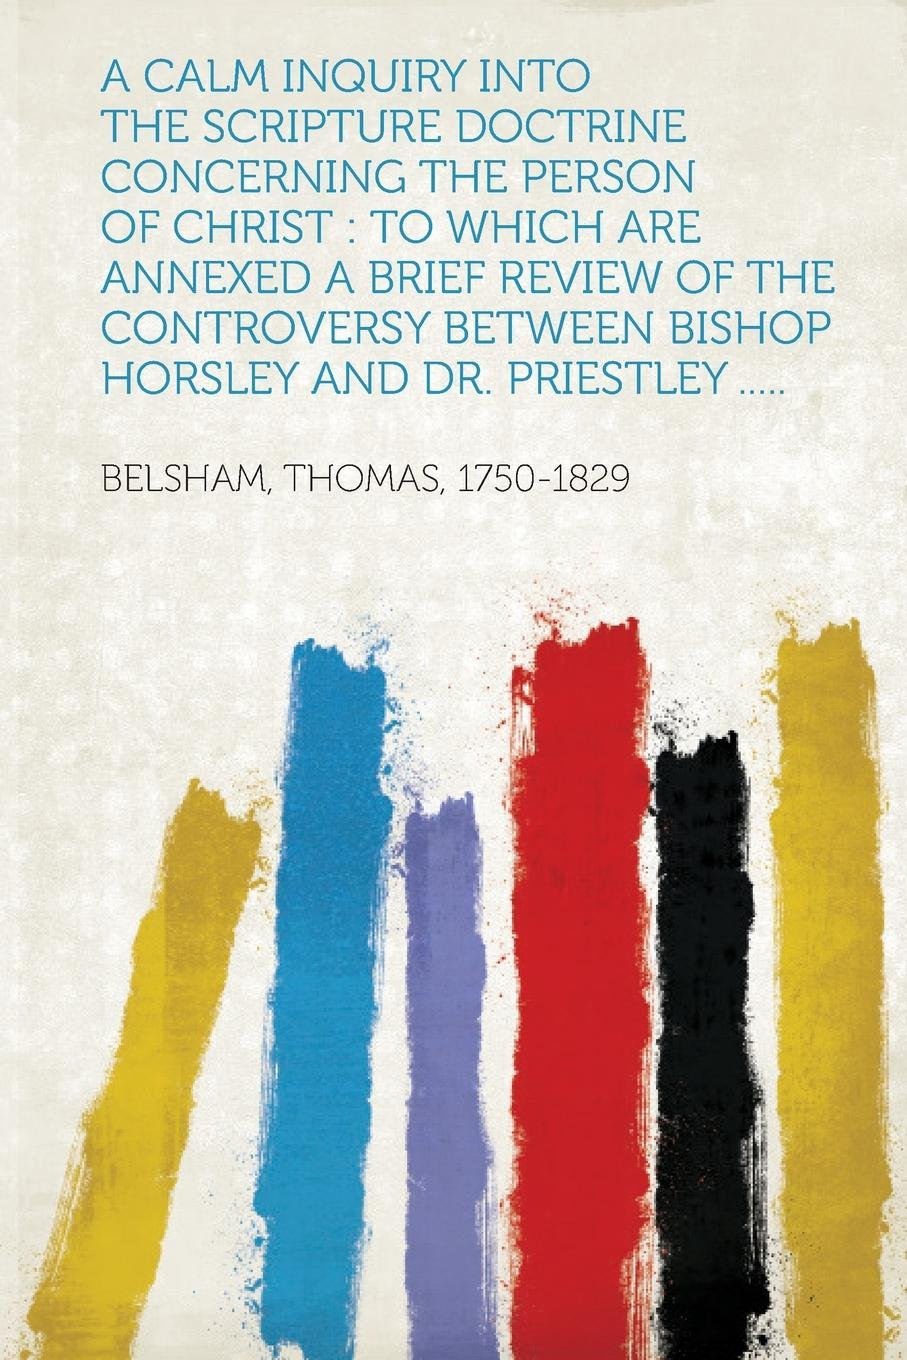 A calm inquiry into the Scripture doctrine concerning the person of Christ: to which are annexed a brief review of the controversy between Bishop Horsley and Dr. Priestley ..... pdf epub